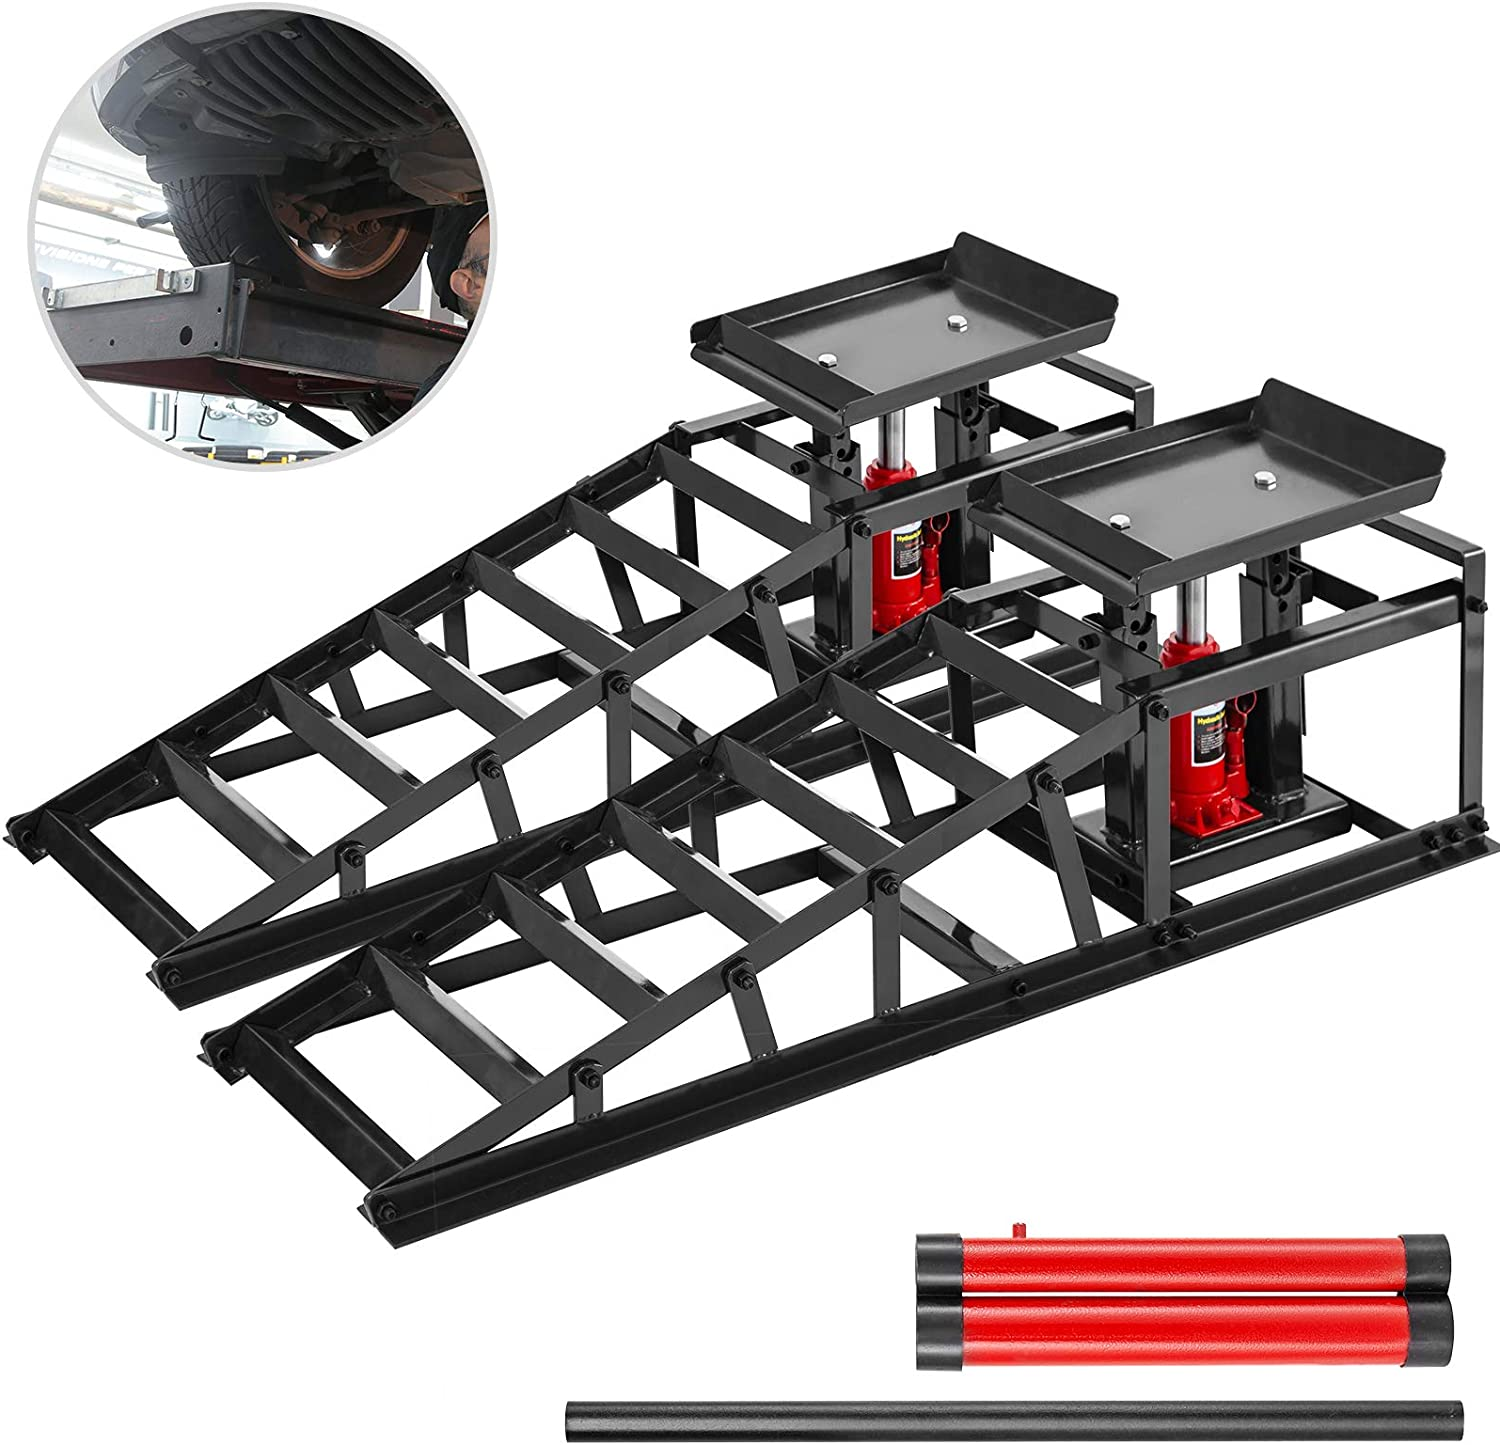 BestEquip 11000lbs Hydraulic Car Ramps, Auto Truck Service Ramp, Hydraulic Lift Car Ramps, Extra Two Handles, 1-Pair Black